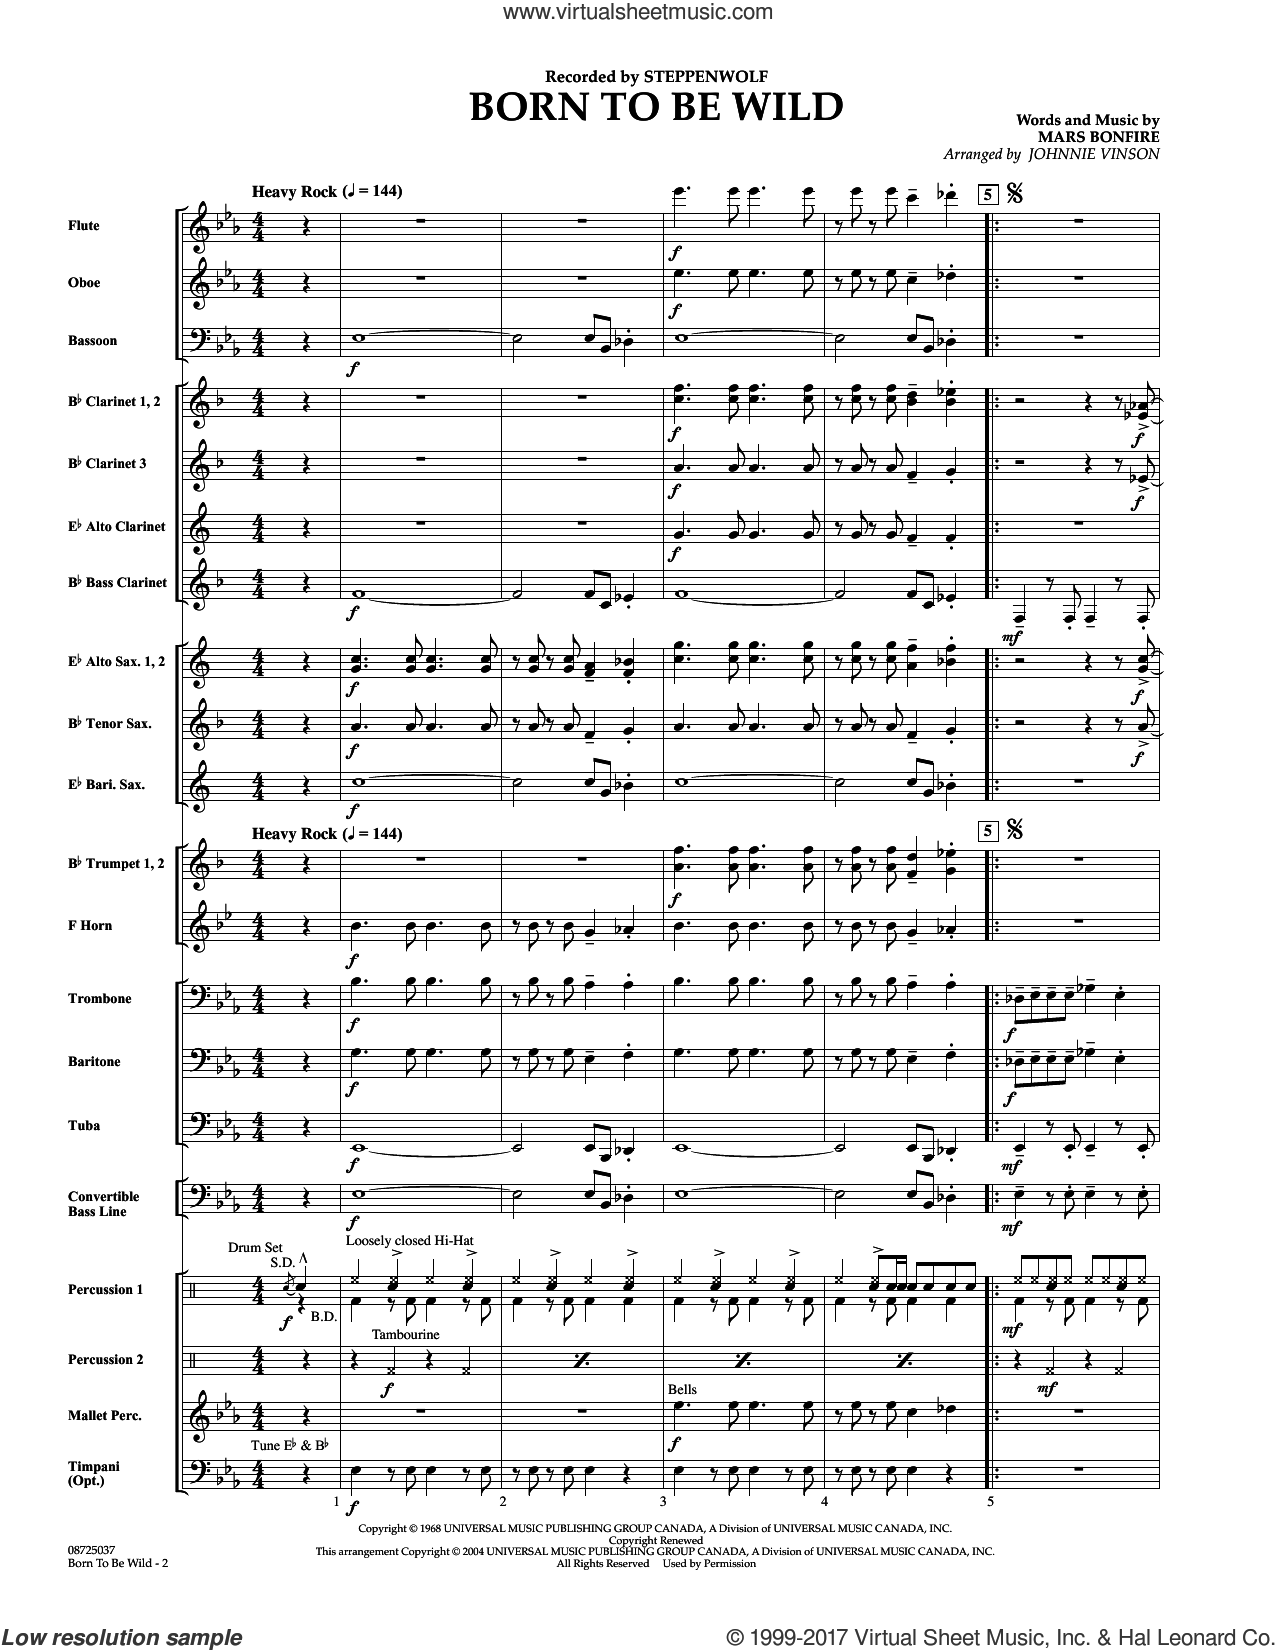 Born to Be Wild (COMPLETE) sheet music for concert band by Johnnie Vinson, Mars Bonfire and Steppenwolf, intermediate skill level